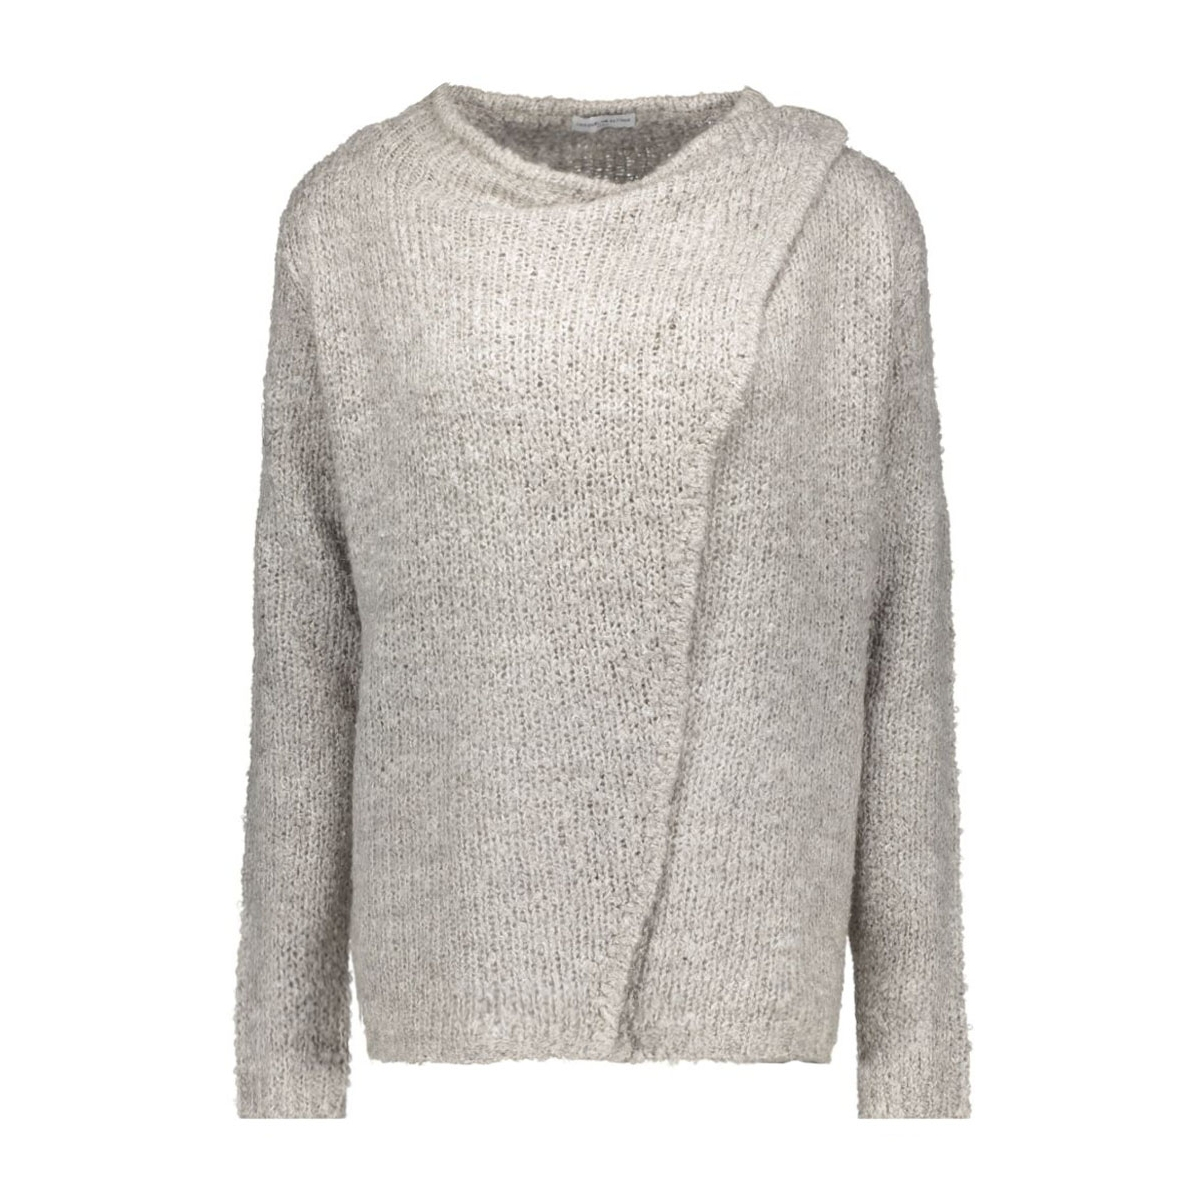 jdygaby l/s button cardigan knt 15119203 jacqueline de yong vest light grey melange